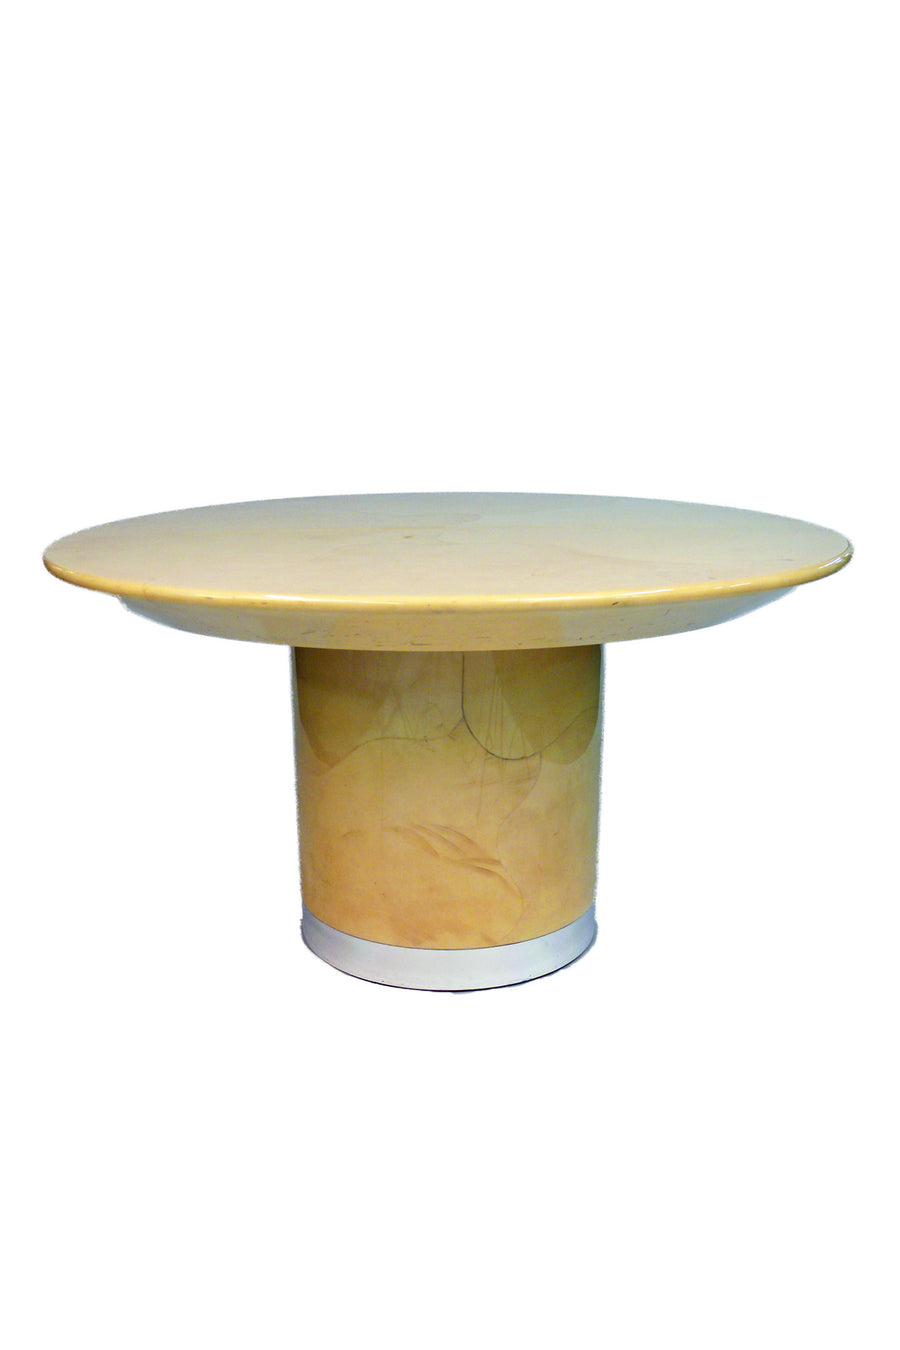 Aldo Tura Goatskin Parchment Dining Table